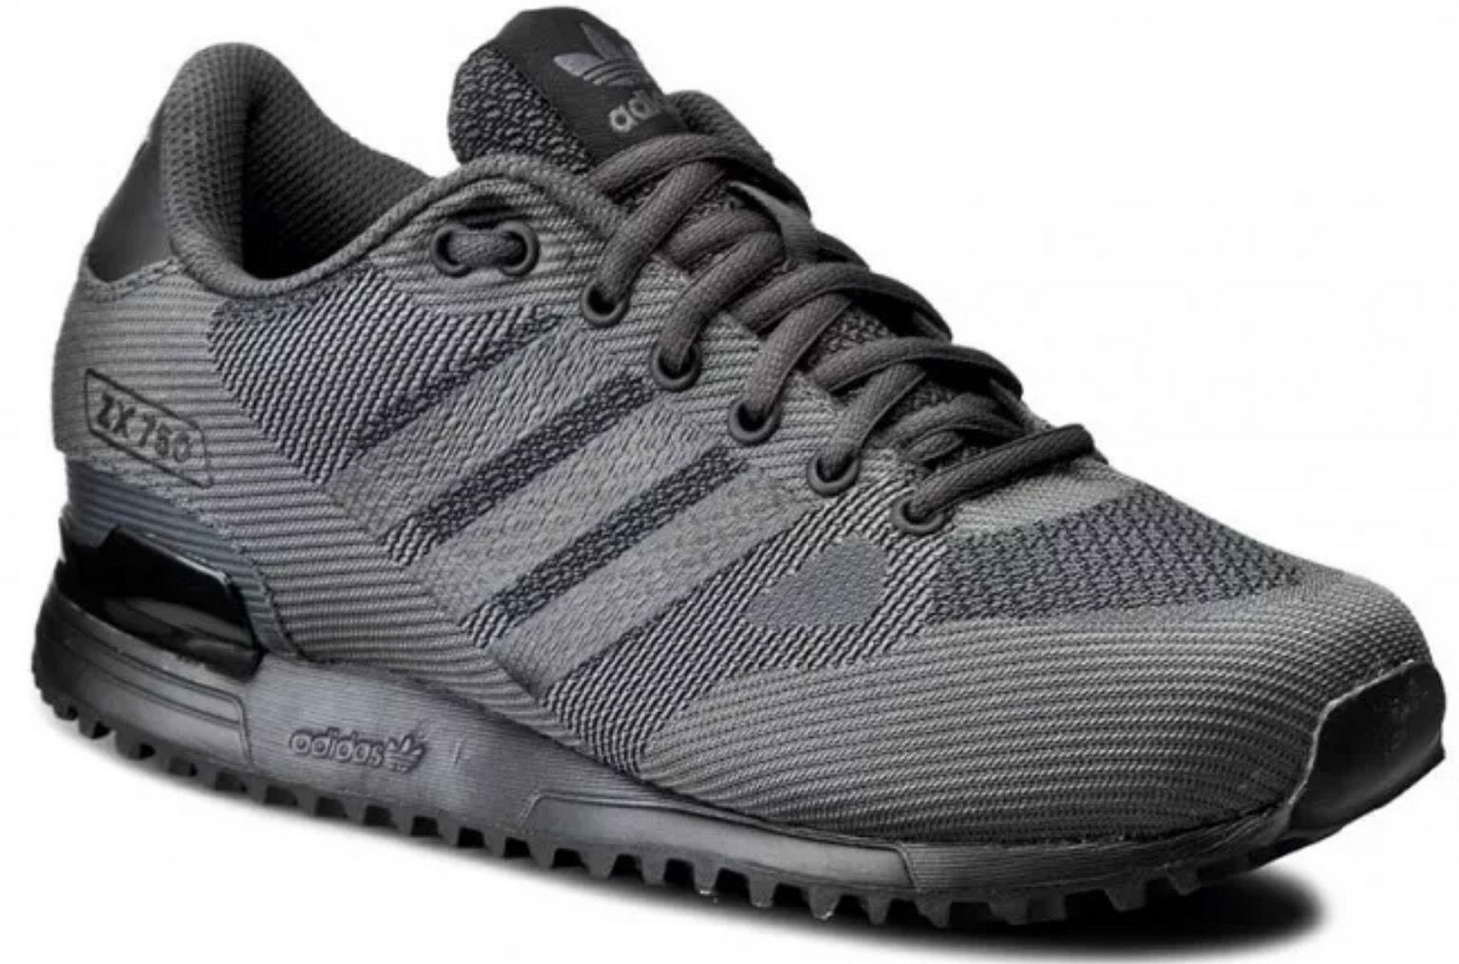 adidas zx 750 wv s80125